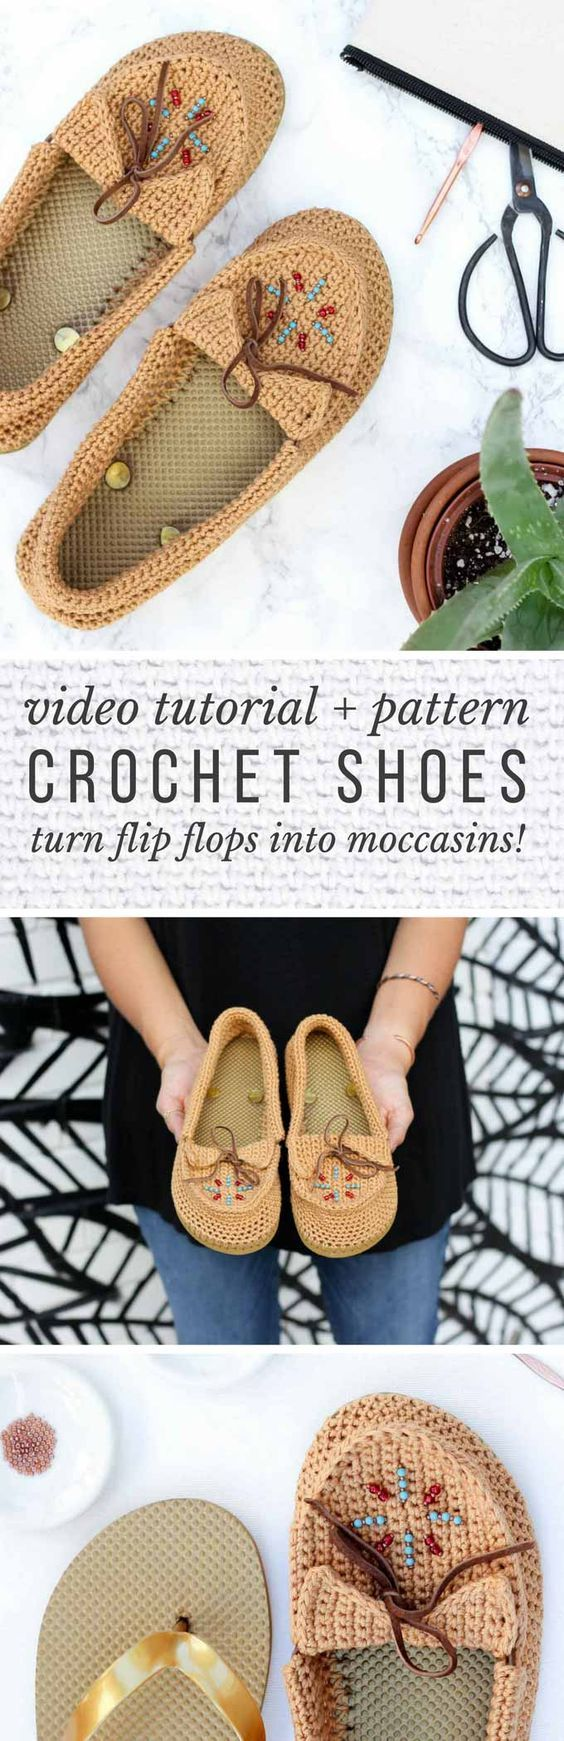 Calling all boho fans! Learn how to crochet shoes with flip flop soles with this free crochet moccasin pattern and video tutorial! These modern crochet moccasins make super comfortable women's shoes or slippers and can be customized however you wish. Made